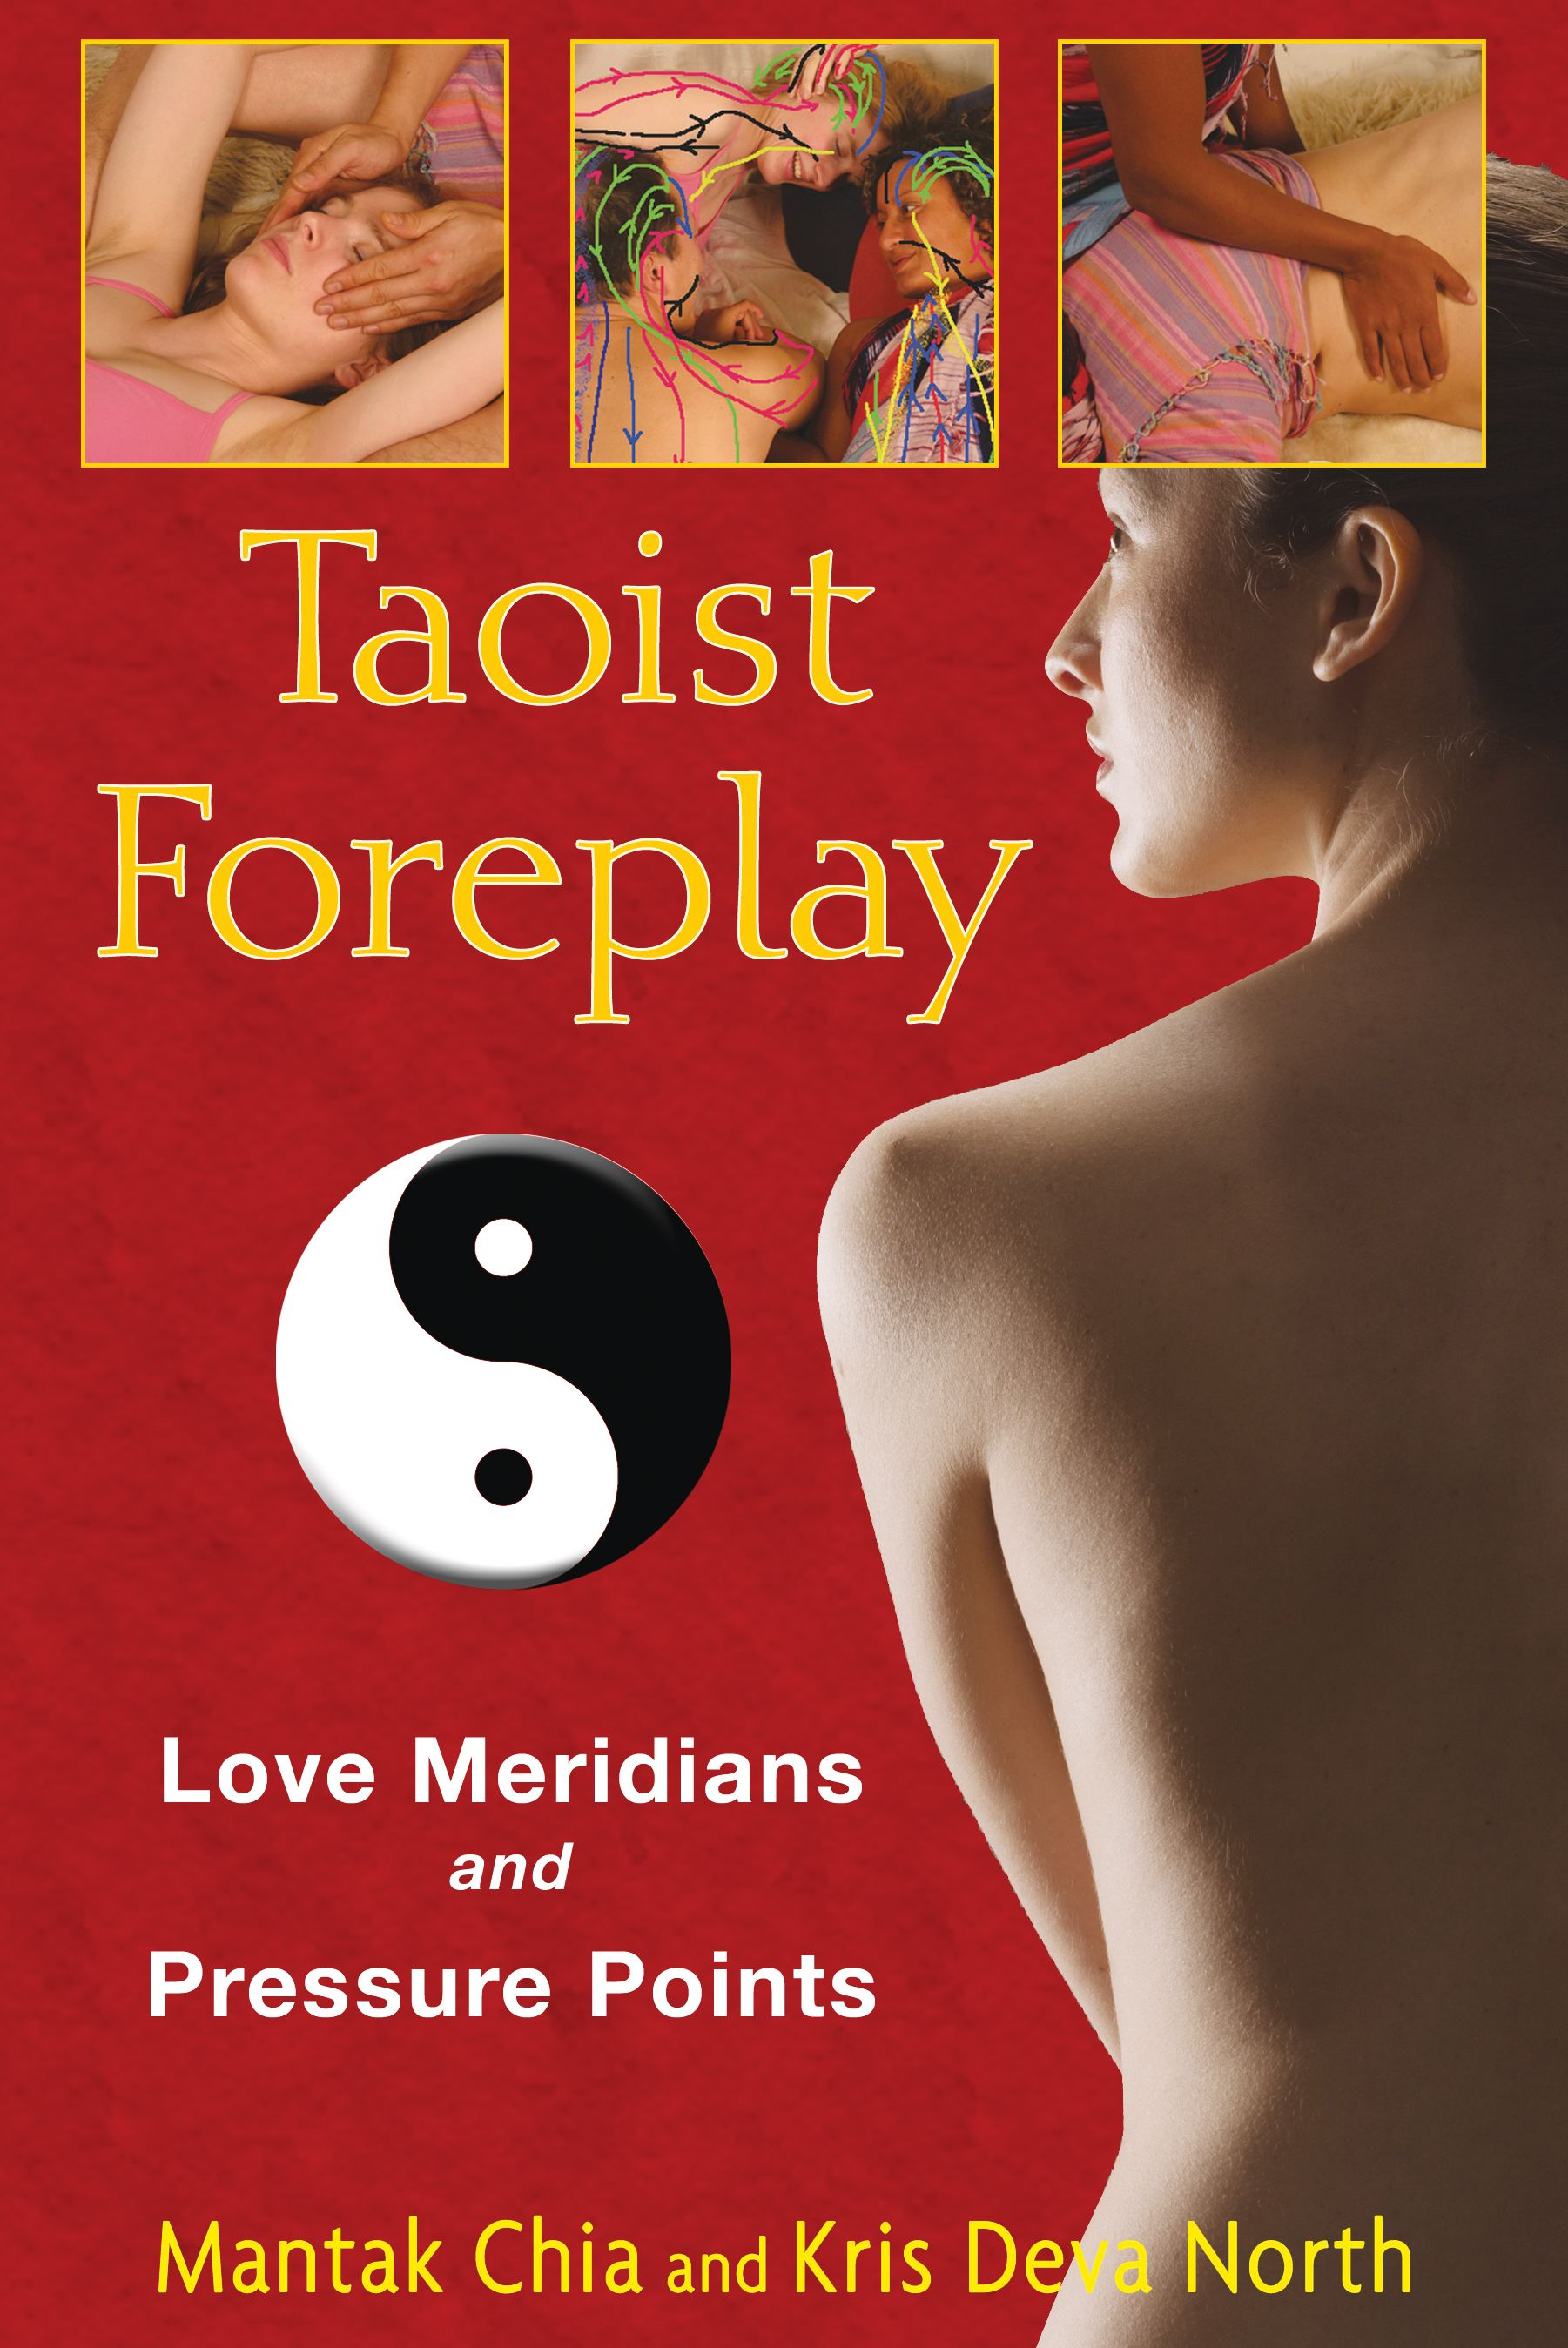 Taoist-foreplay-9781594771880_hr